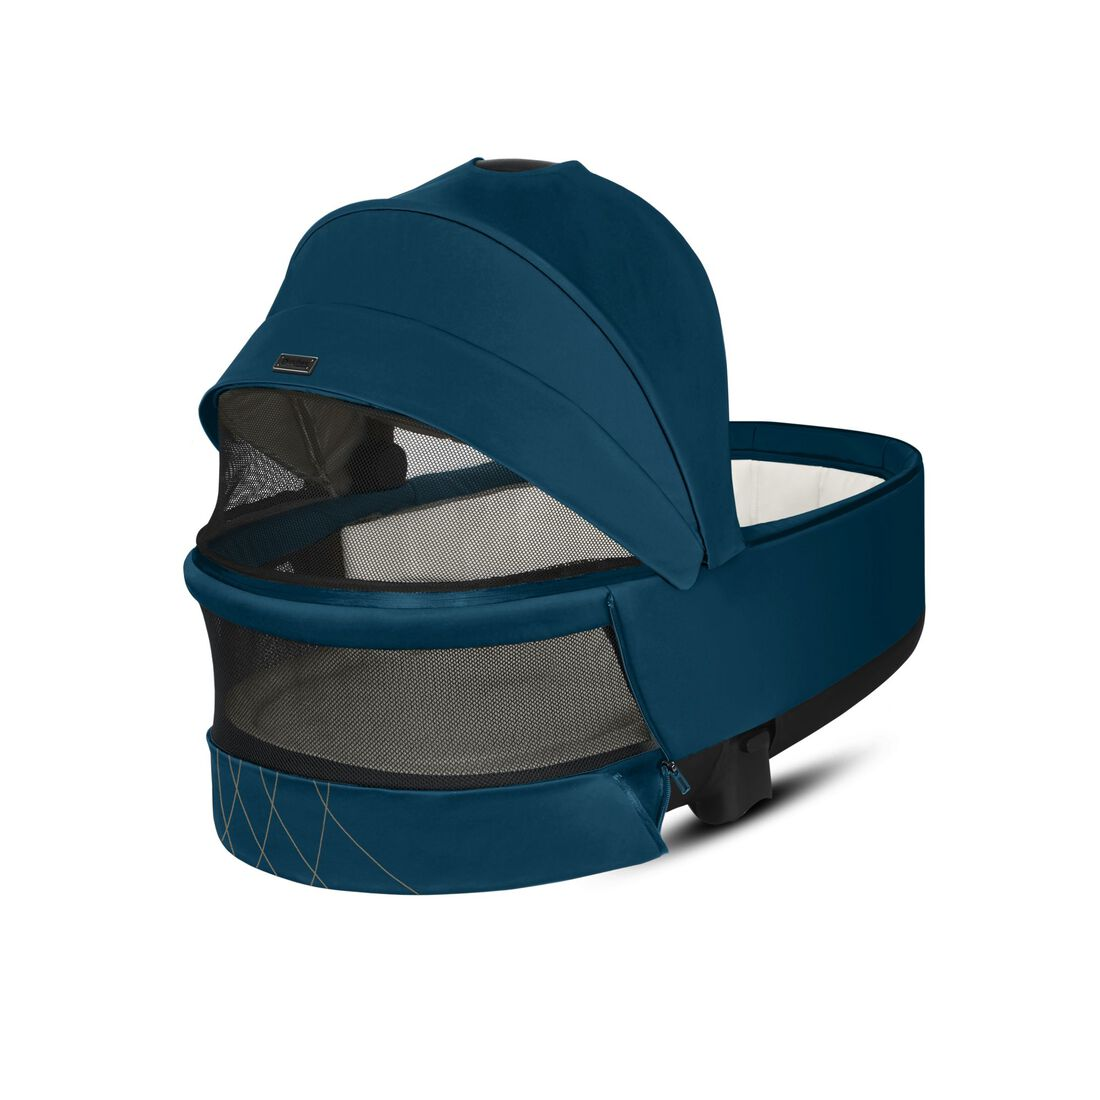 CYBEX Priam Lux Carry Cot - Mountain Blue in Mountain Blue large Bild 4